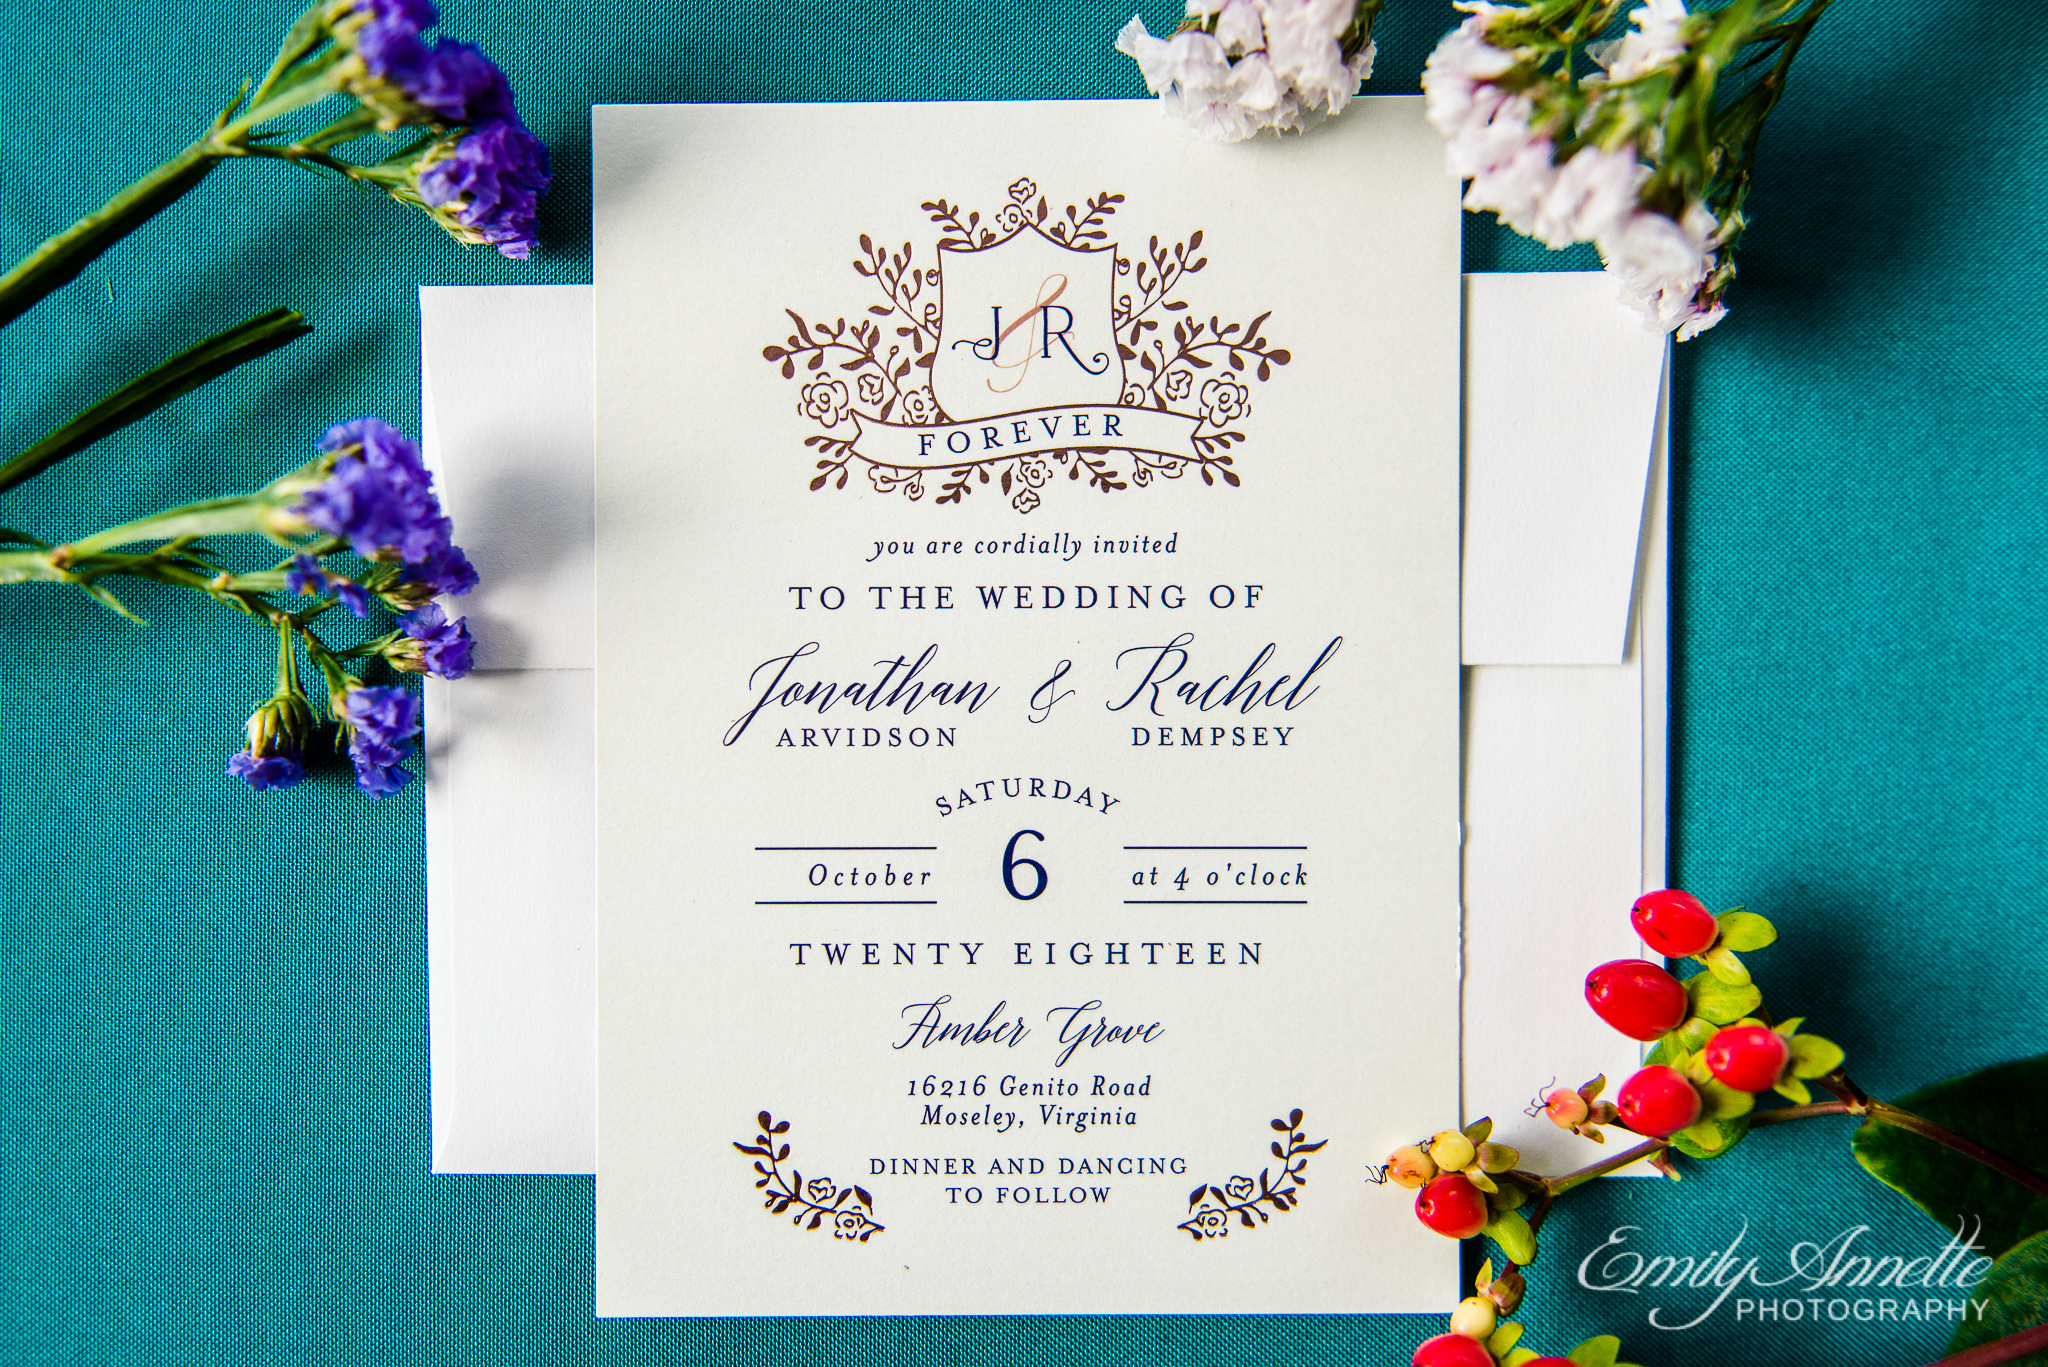 A flatlay with a classic romantic rose gold wedding invitation with small flowers on a blue background for a wedding at Amber Grove near Richmond, Virginia